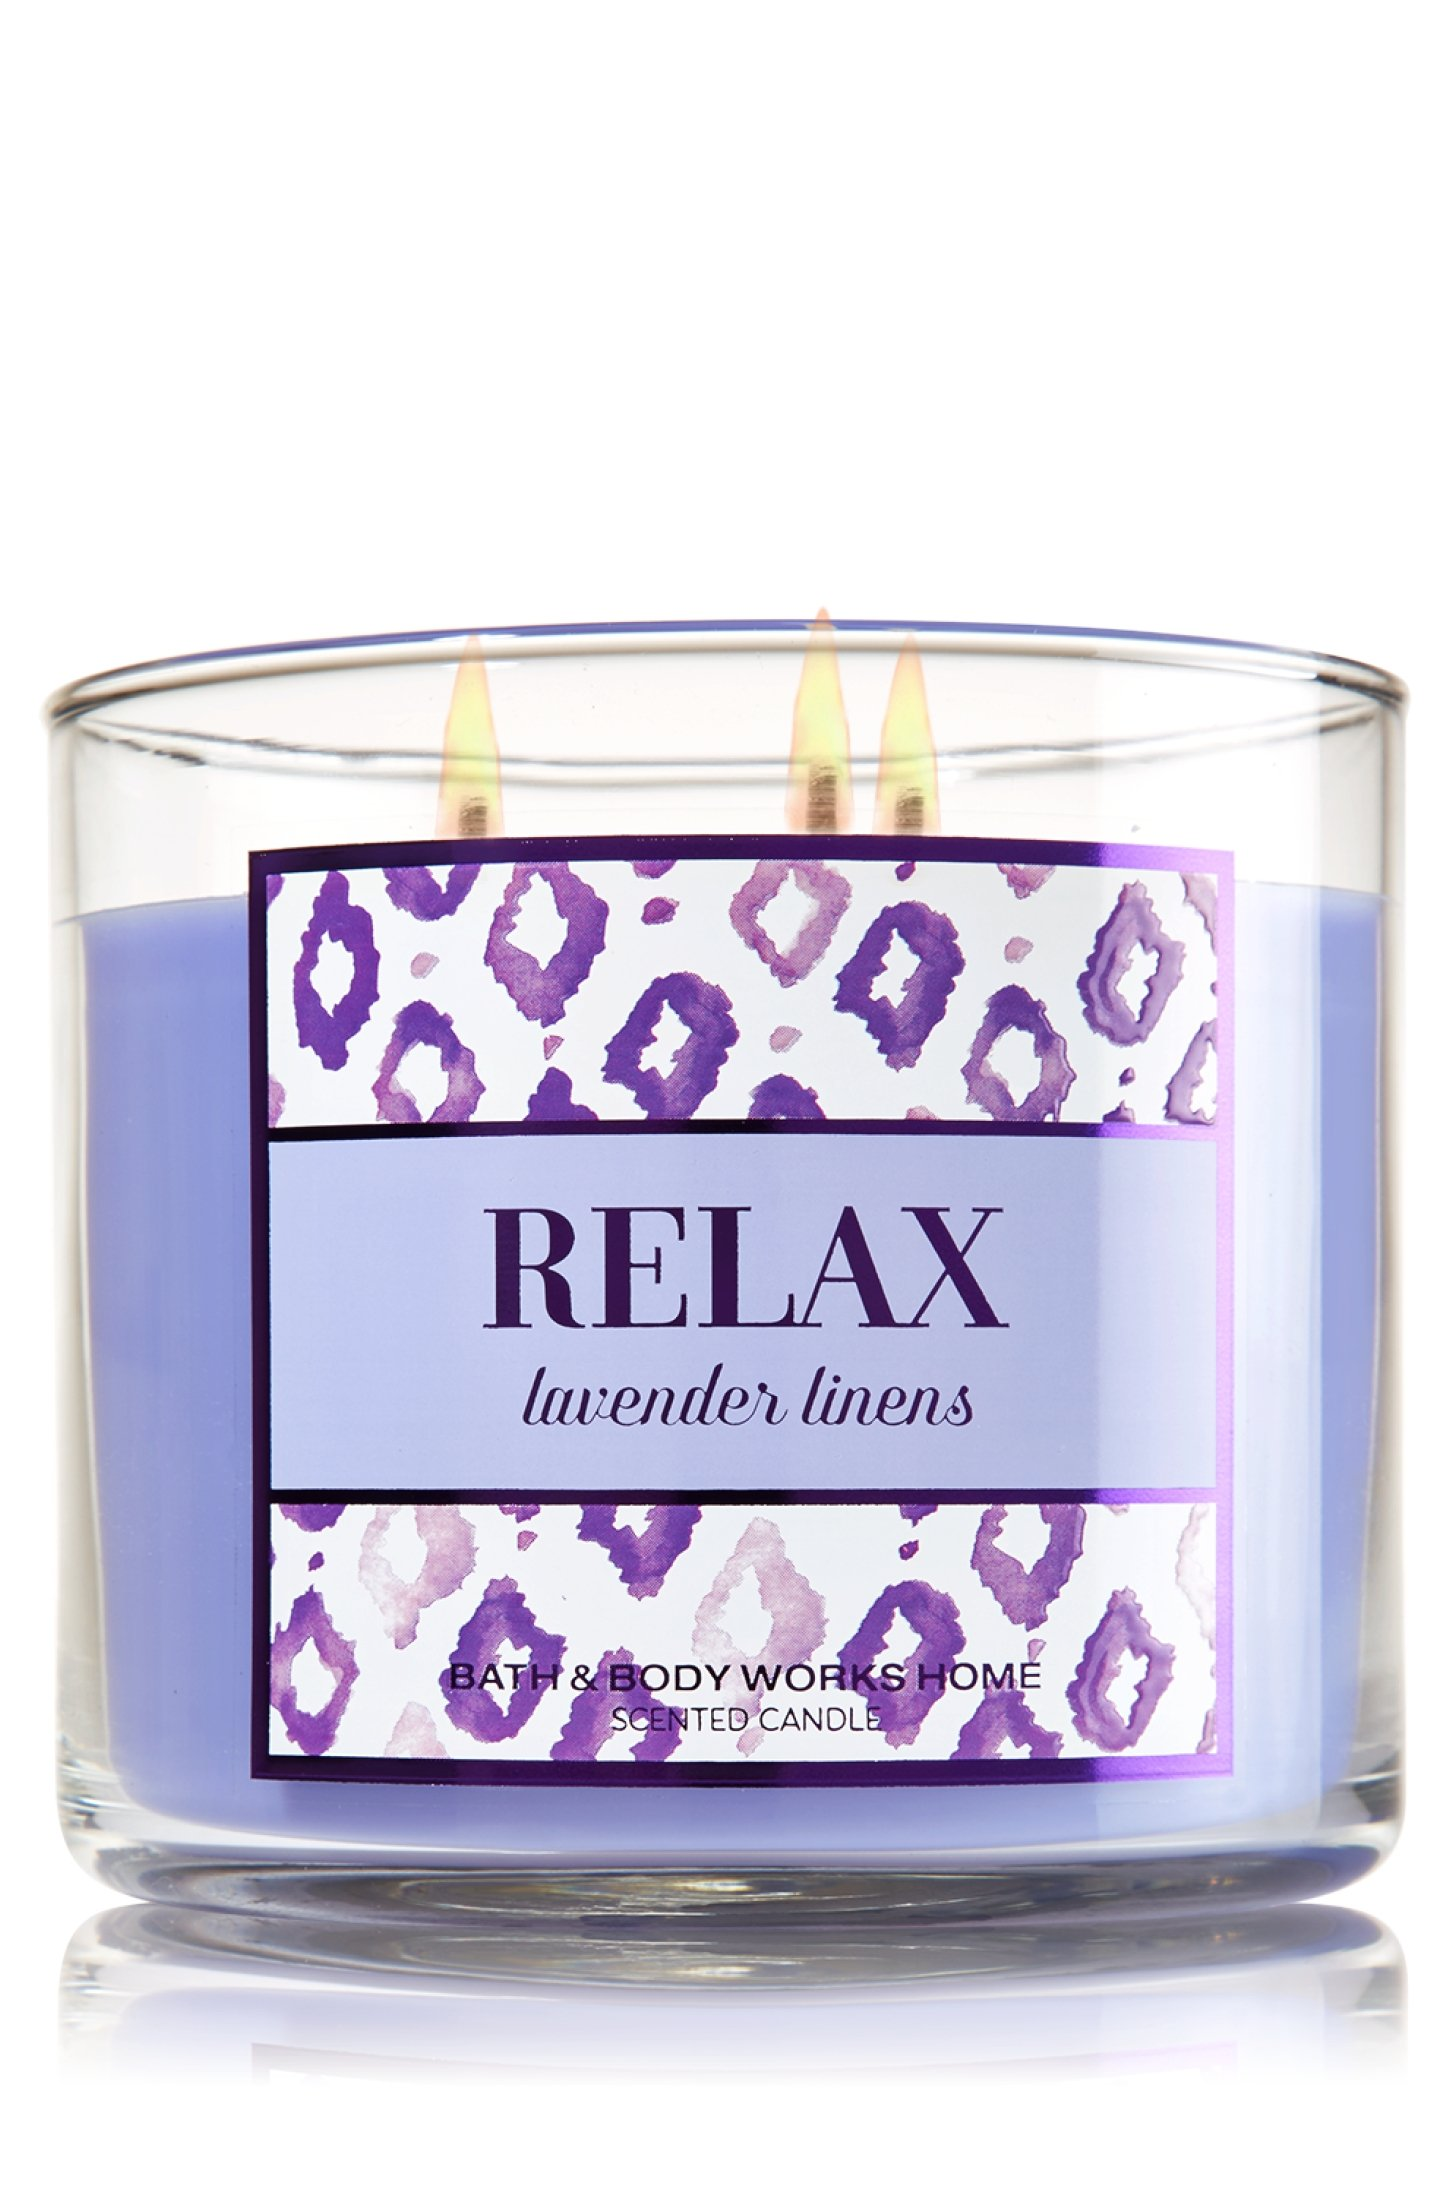 Bath & Body Works 3 Wick Candle 14.5 Oz Relax - Lavender Linens